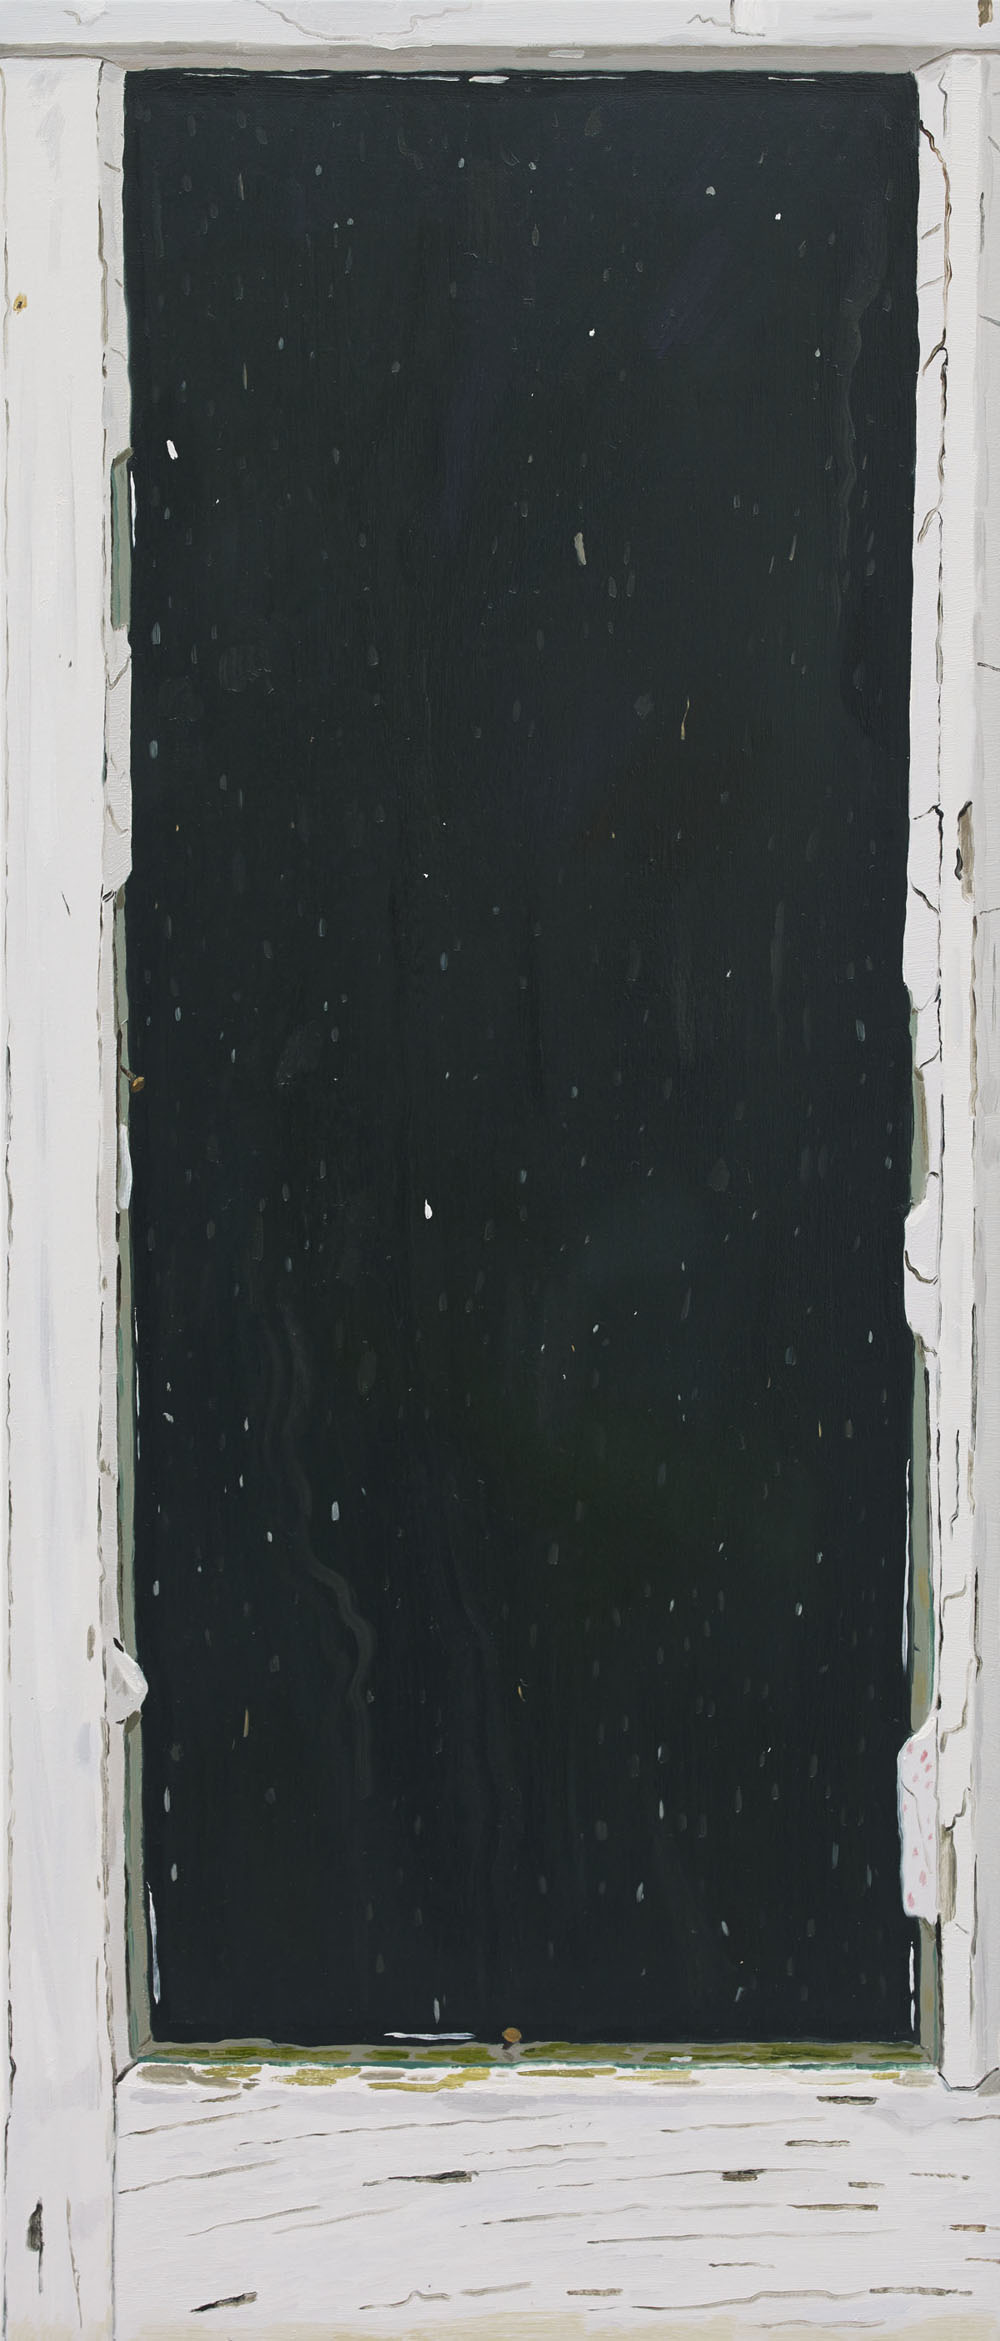 Josephine Halvorson, Woodshed Window (North Facing), 2014, oil on linen, 35 x 15